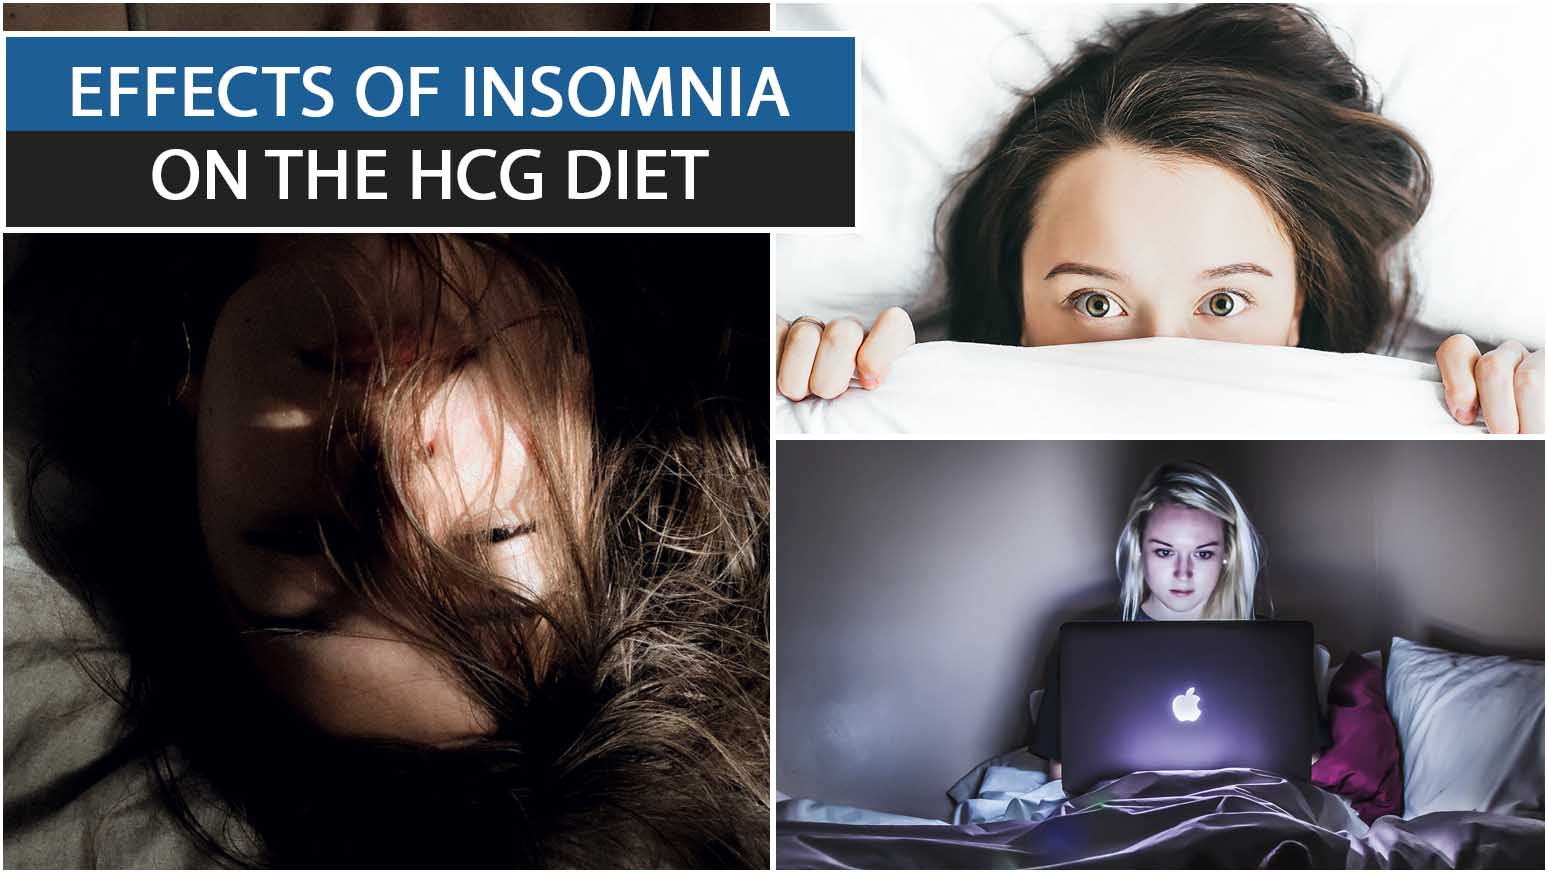 EFFECTS OF INSOMNIA ON THE HCG DIET